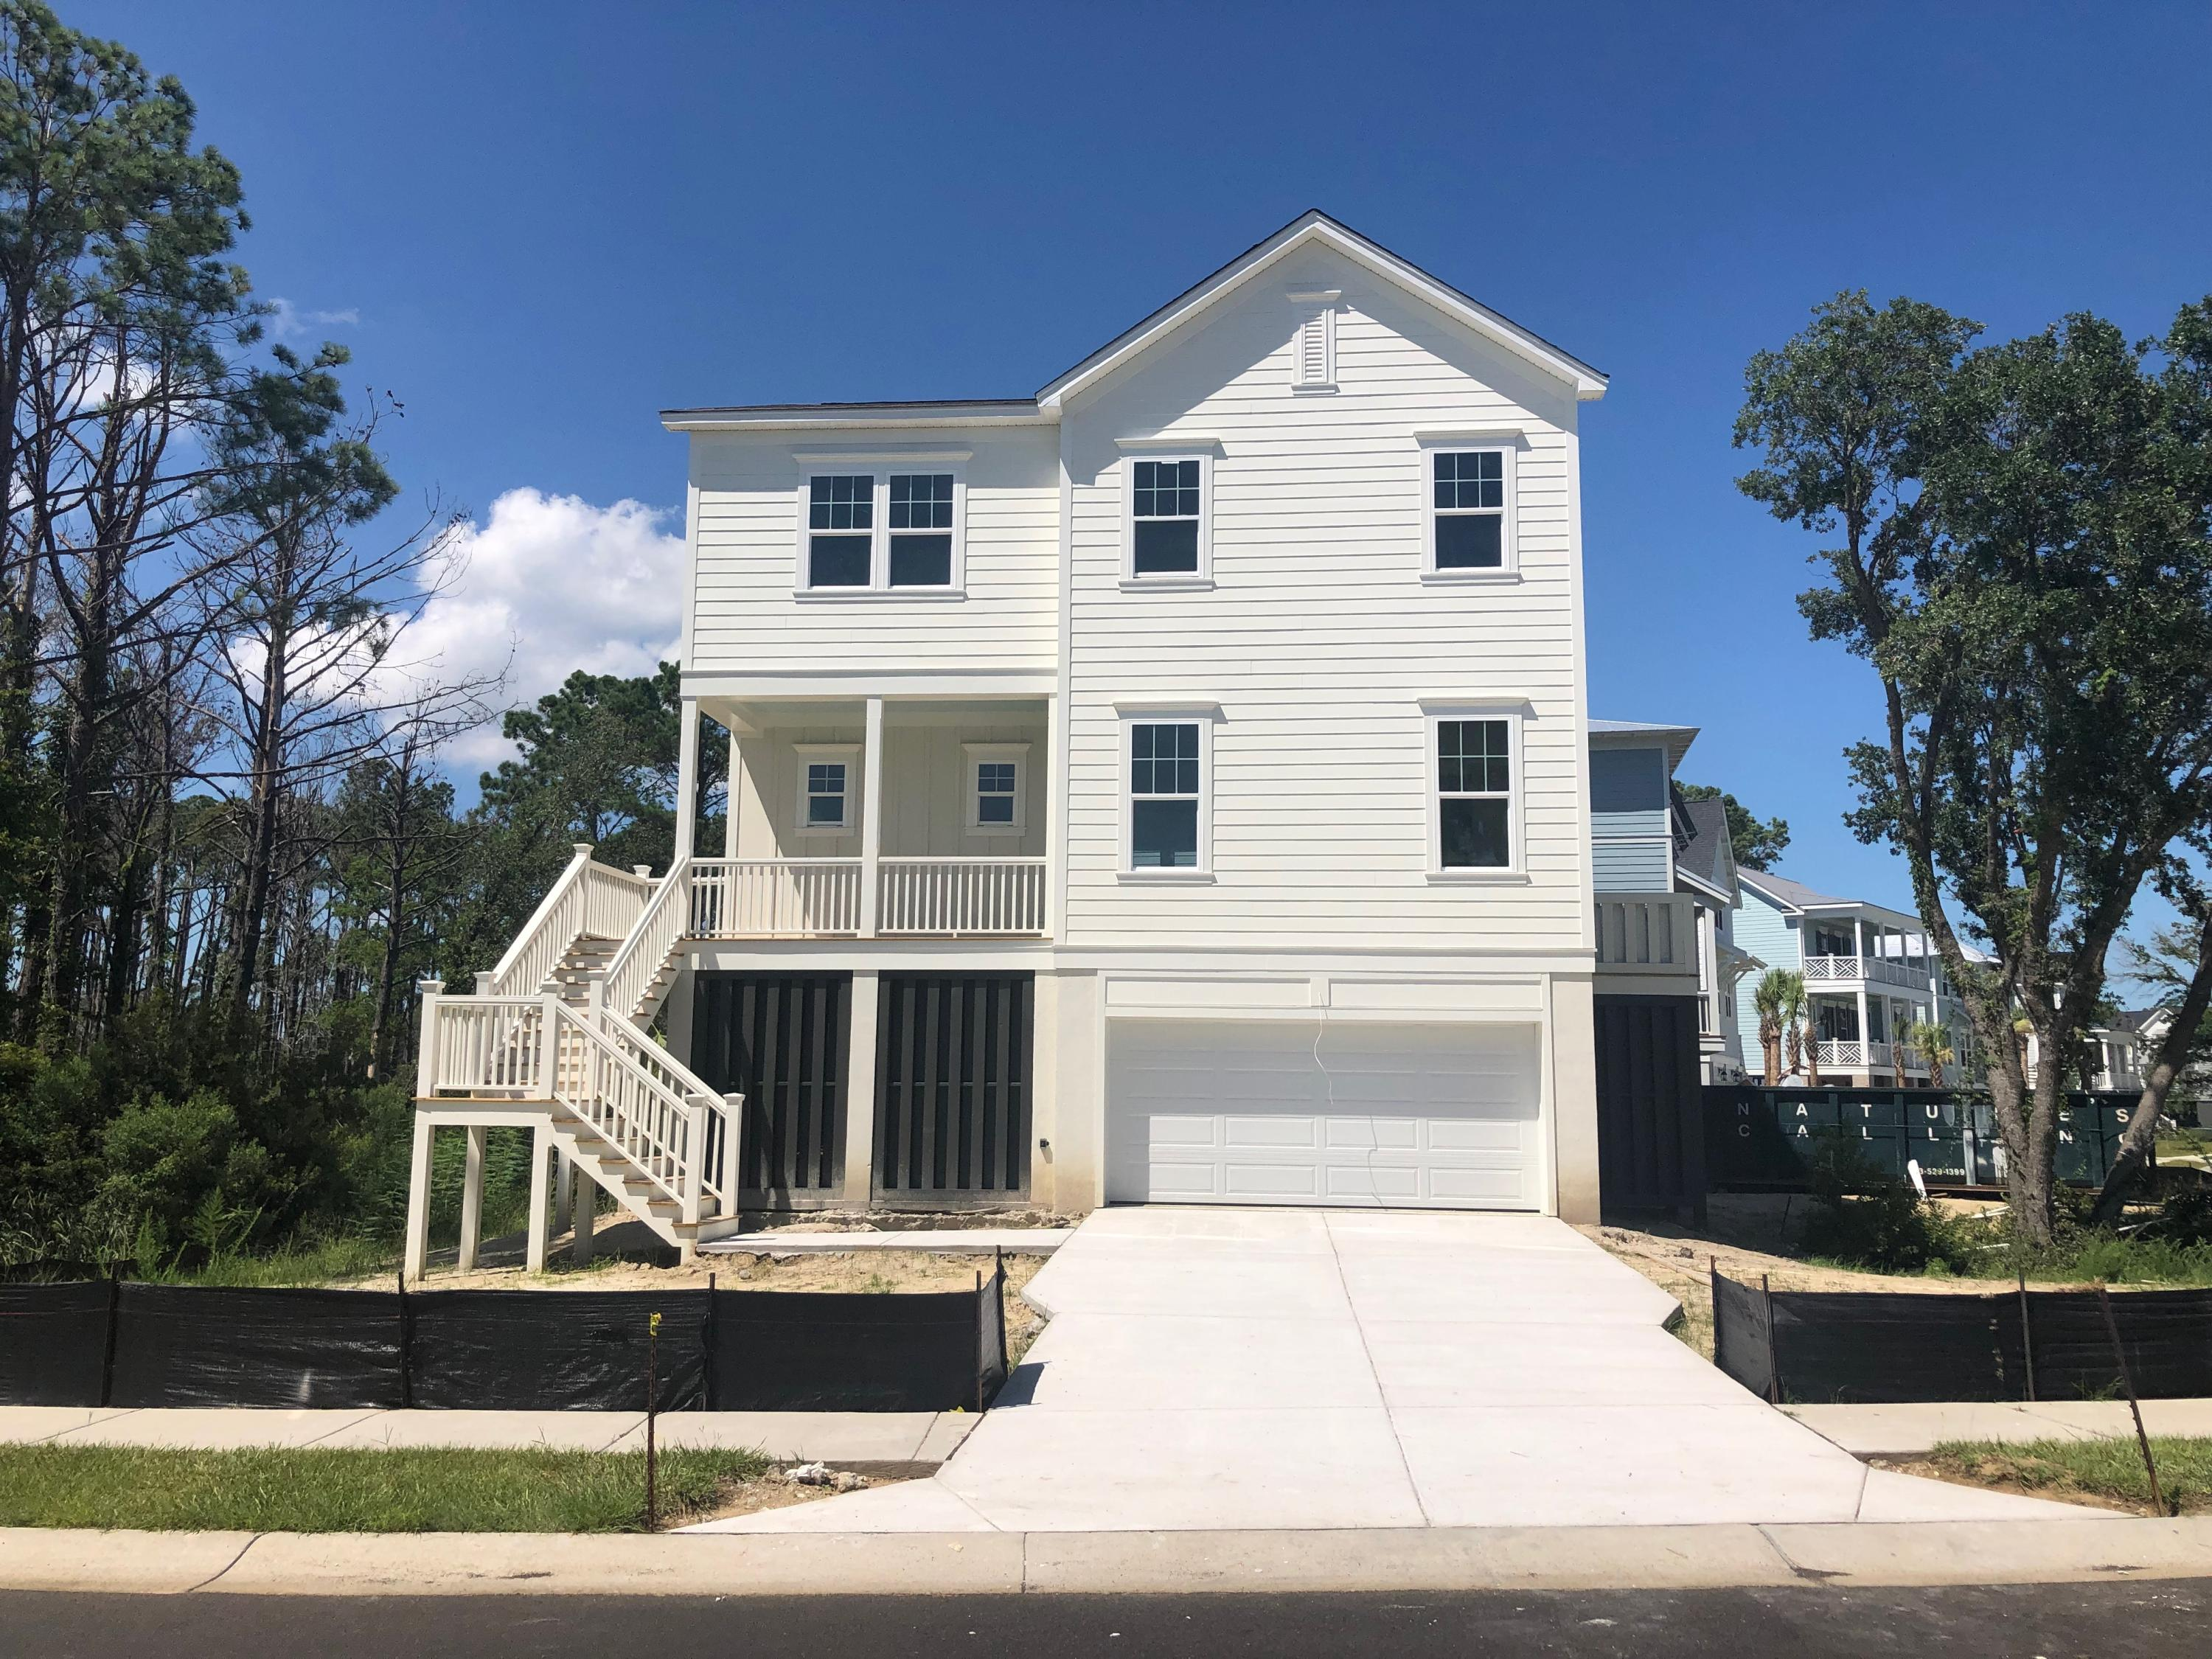 Stratton by the Sound Homes For Sale - 1419 Stratton Place, Mount Pleasant, SC - 5